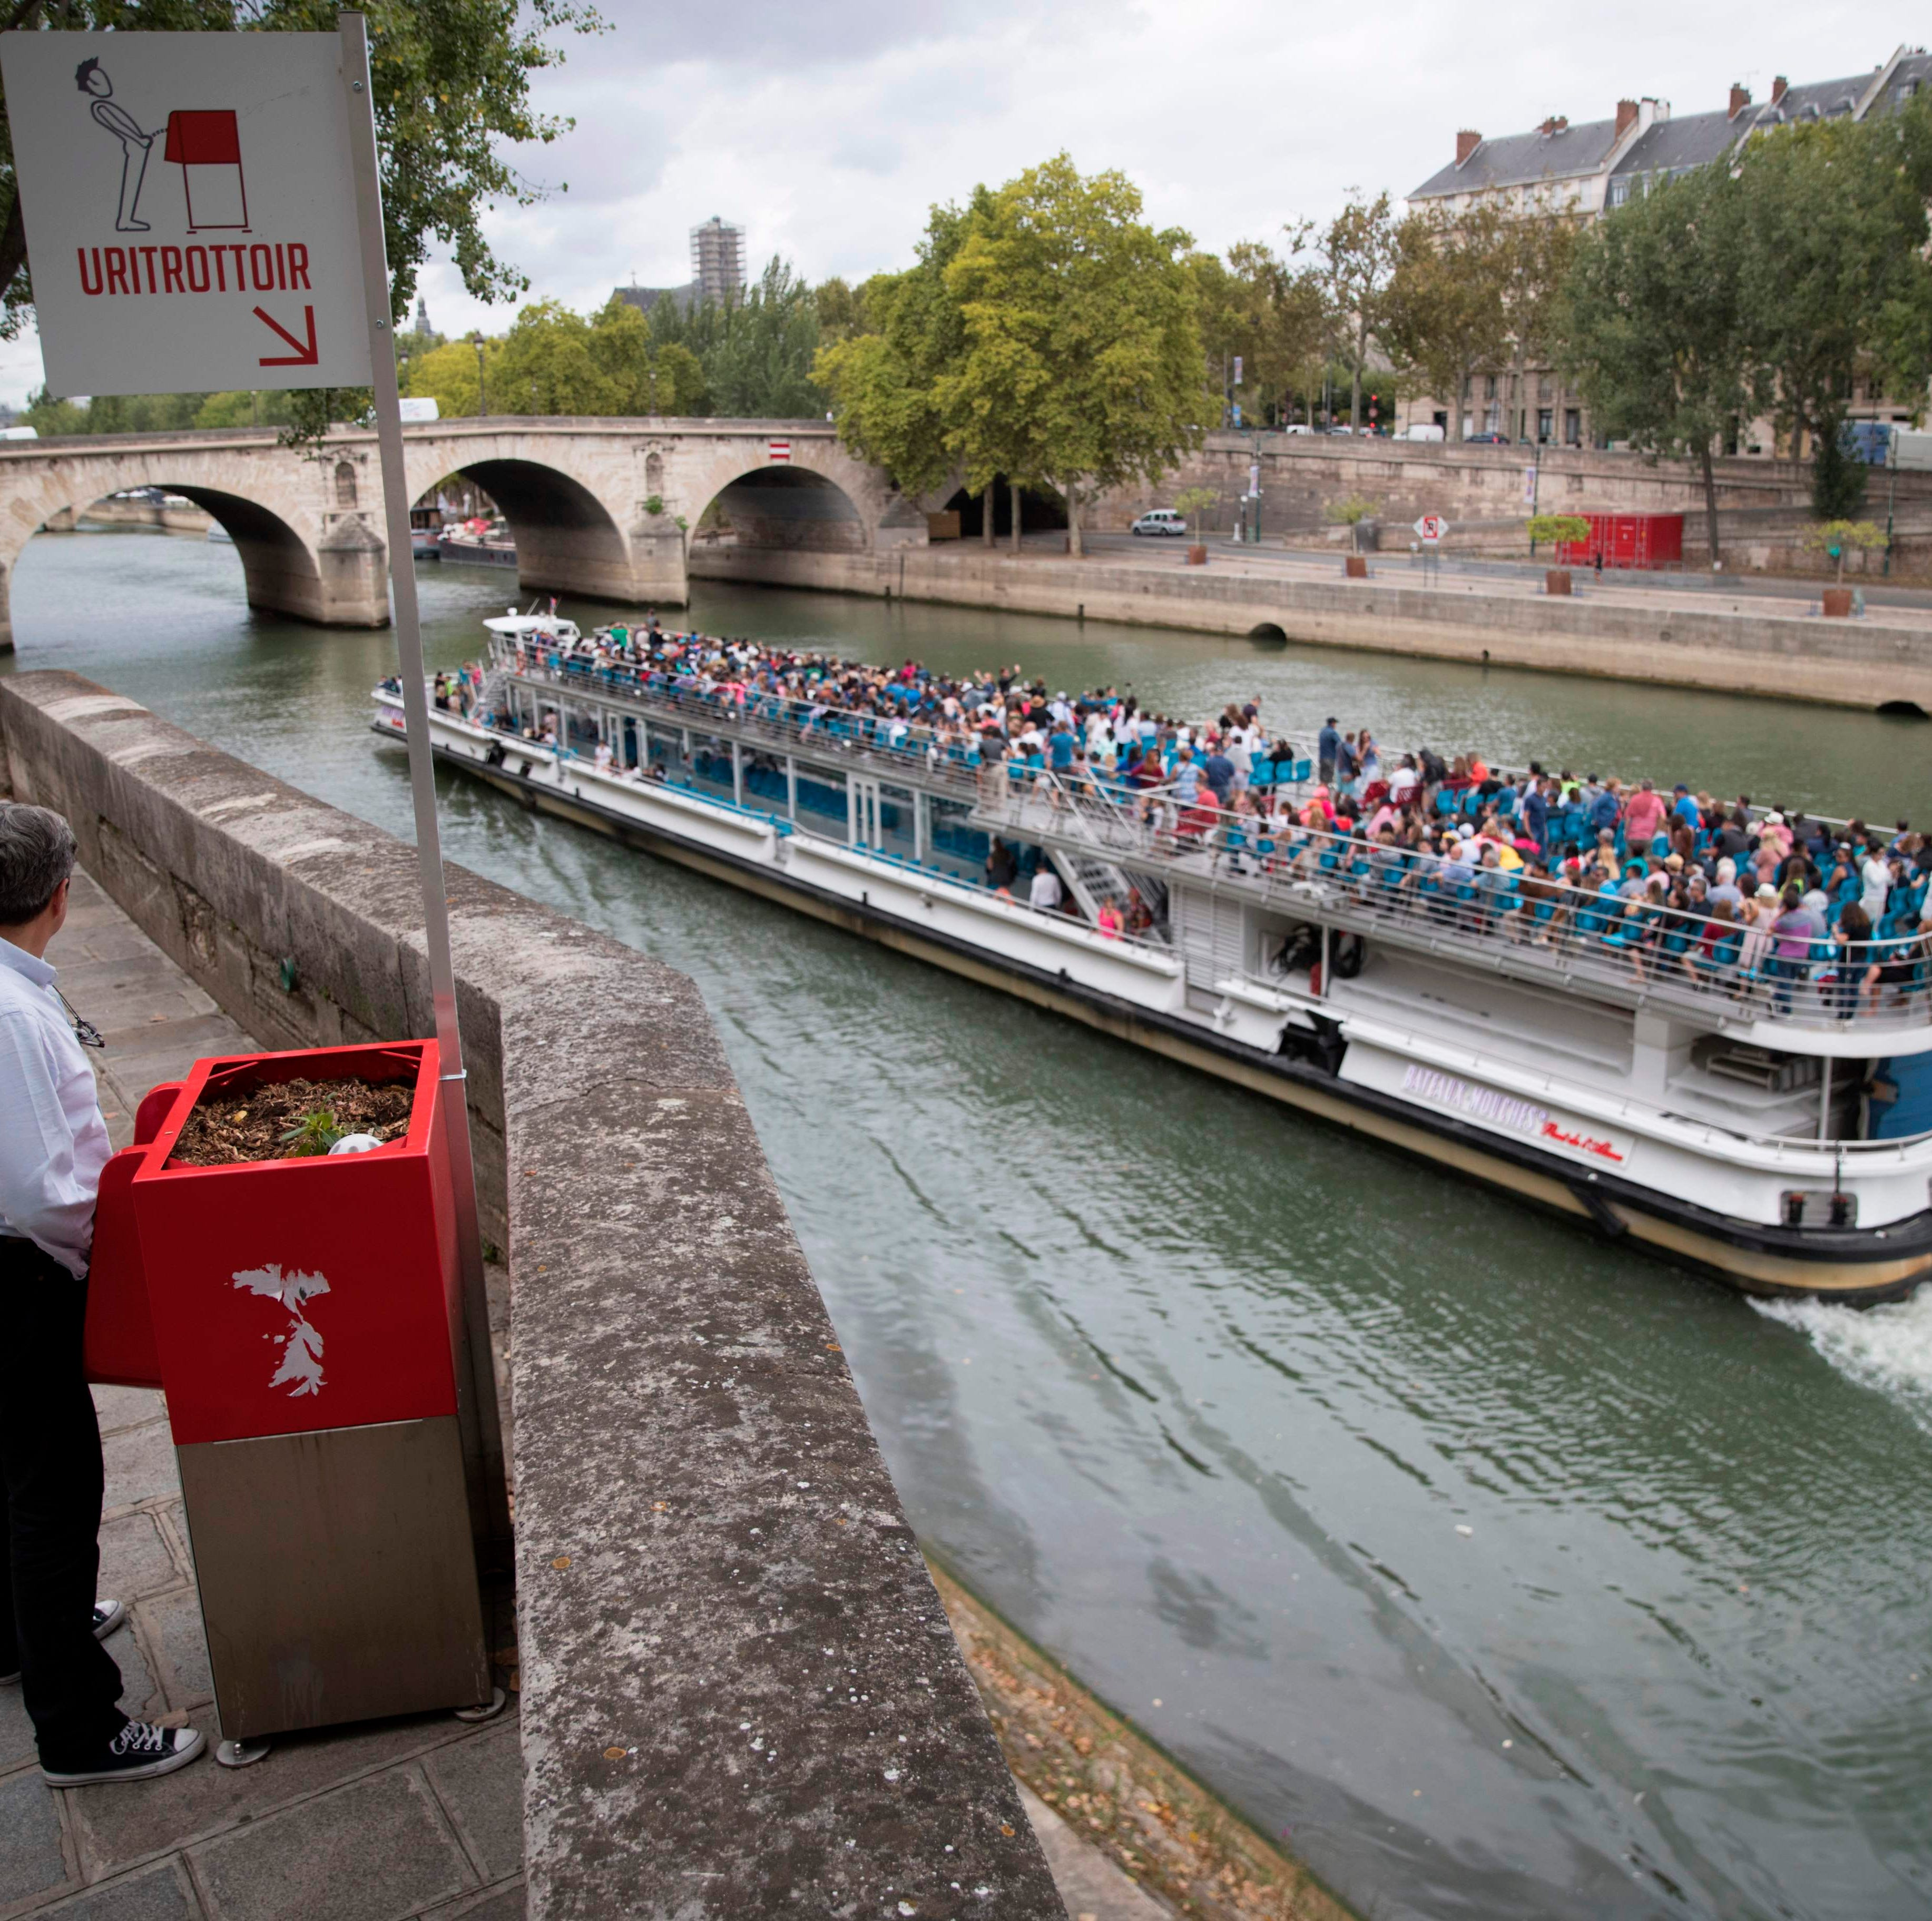 Paris installs completely exposed urinals near popular tourist spots